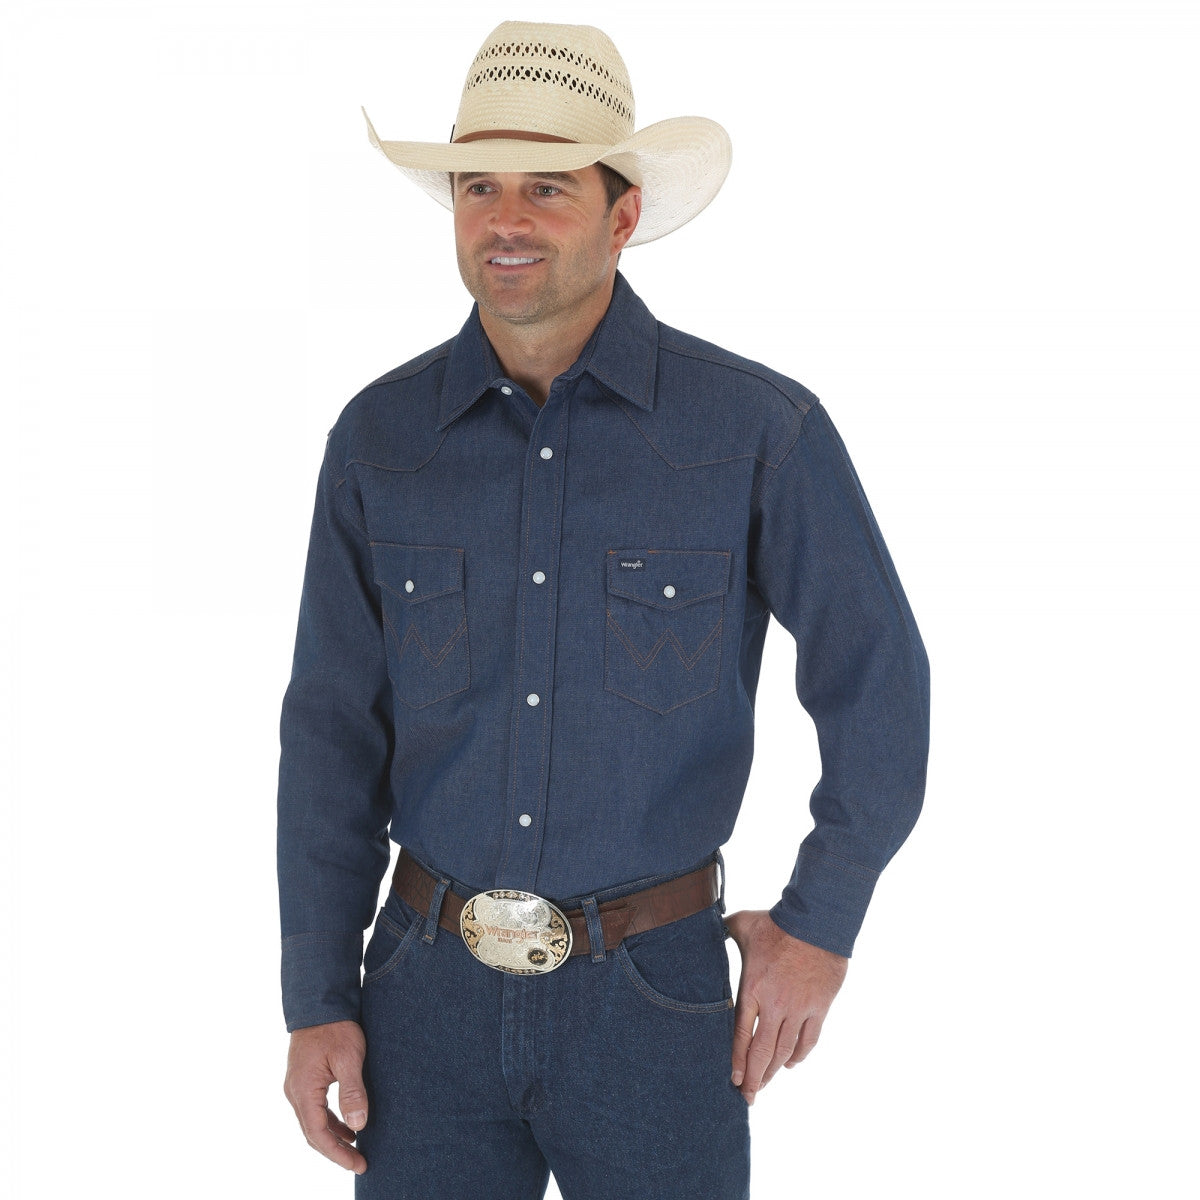 Men's Wrangler Authentic Cowboy Cut Snap Front Work Shirt #70127BT